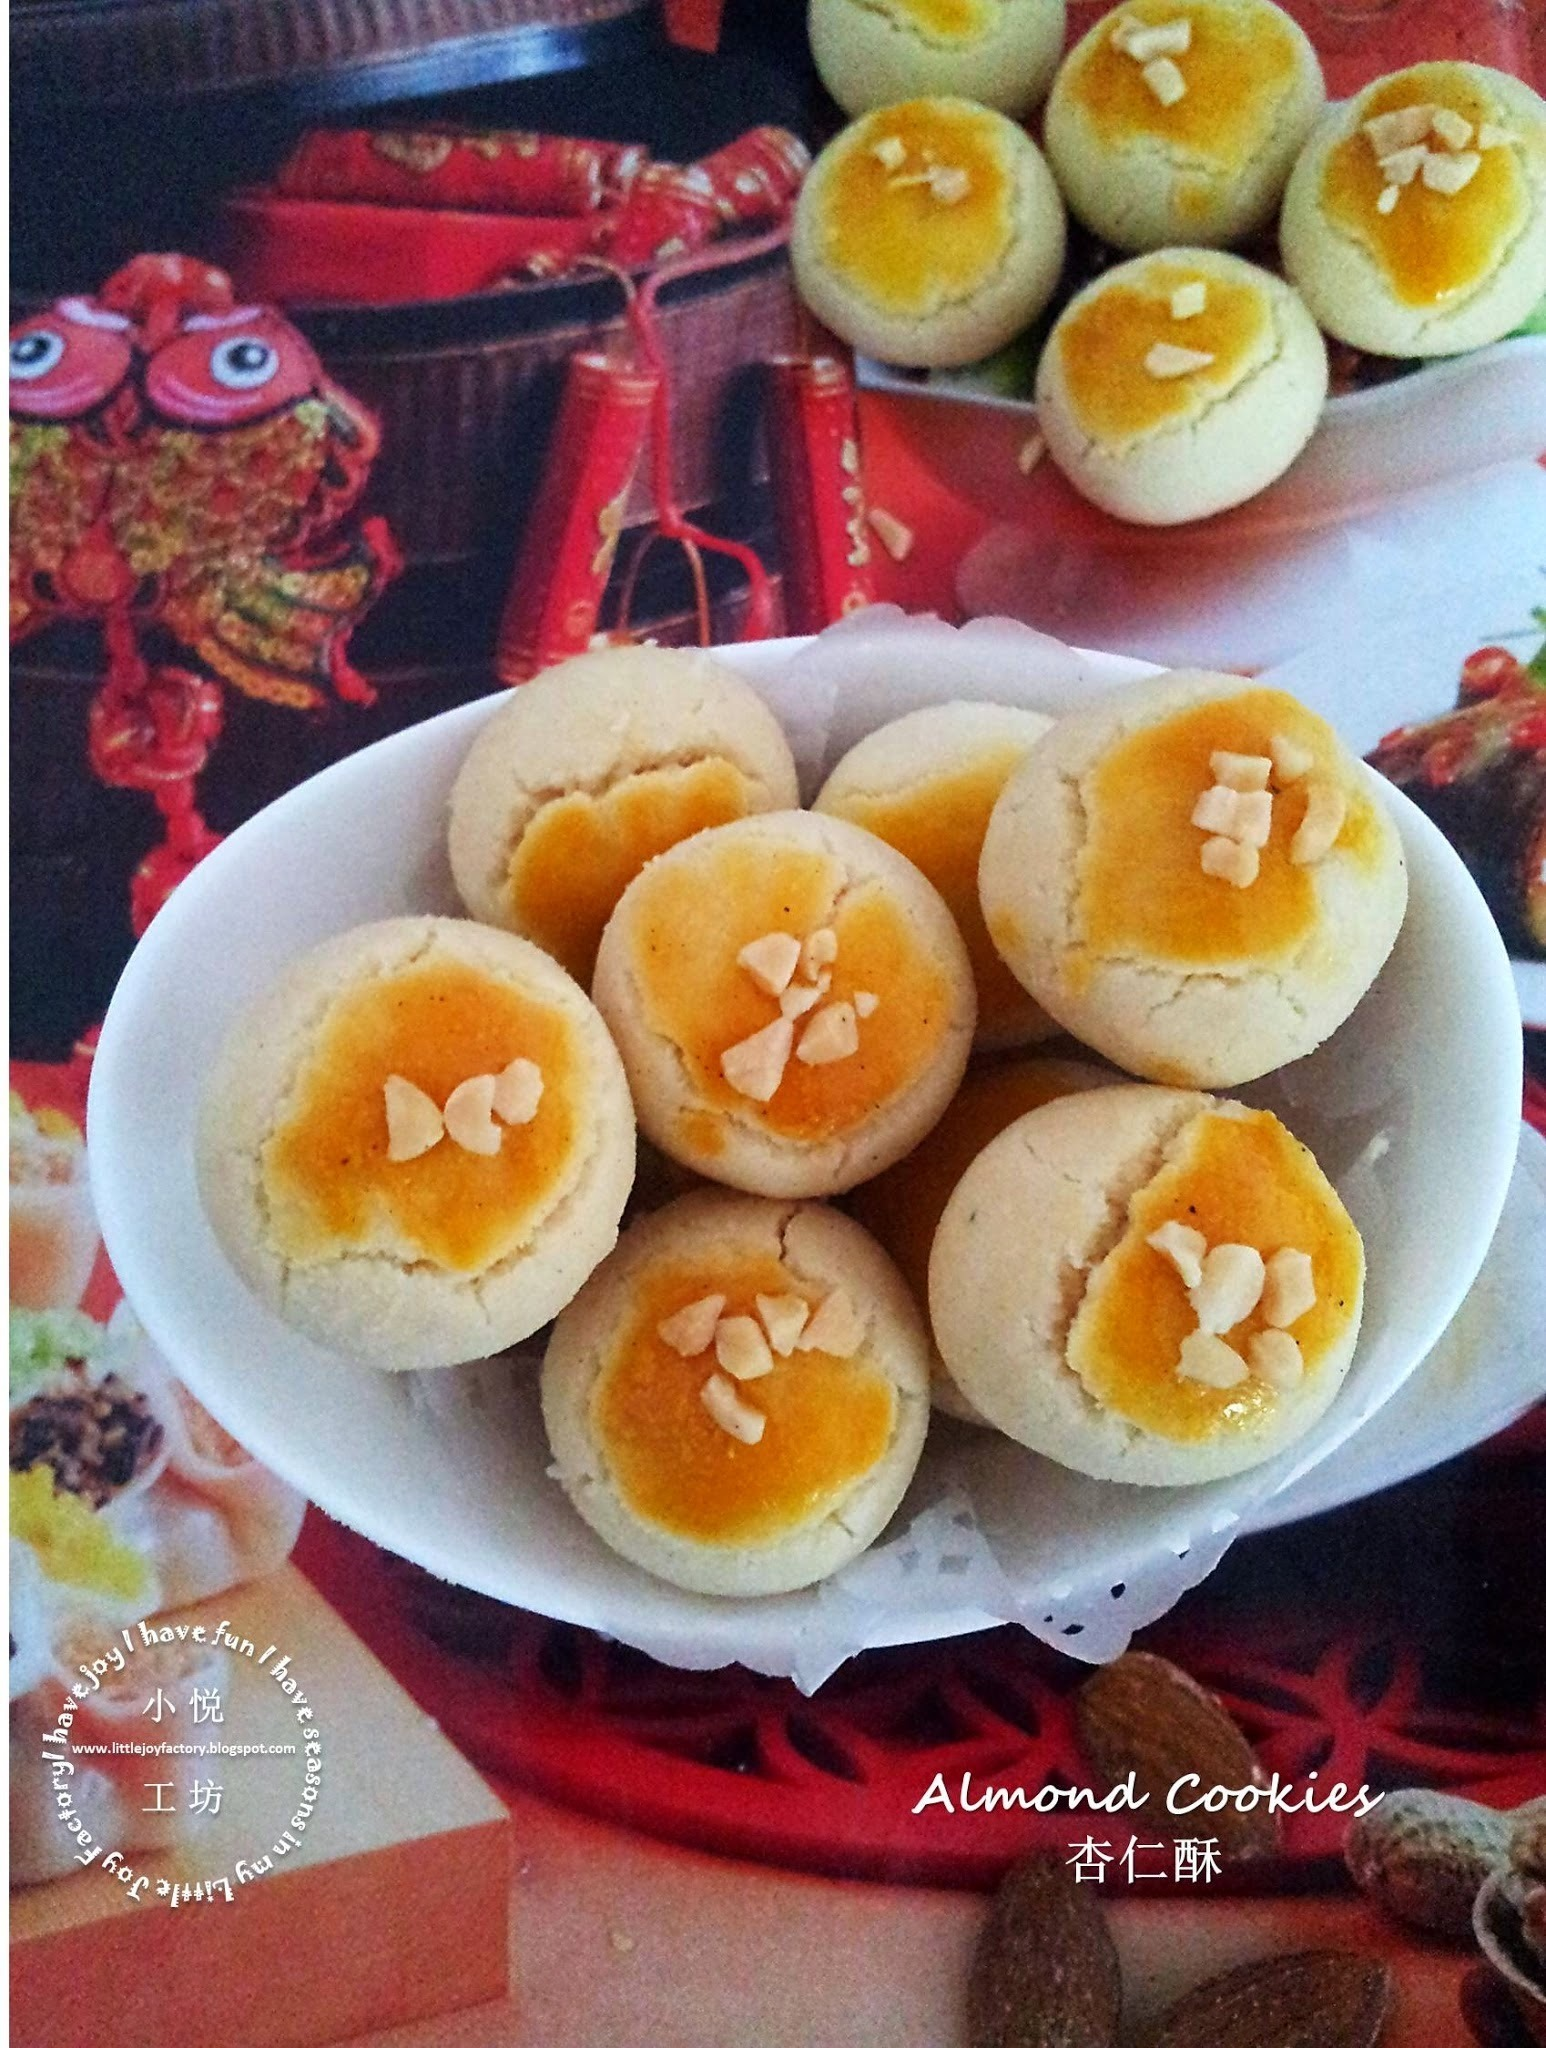 2015 Most Popular Almond Cookies 备受瞩目的杏仁酥2015